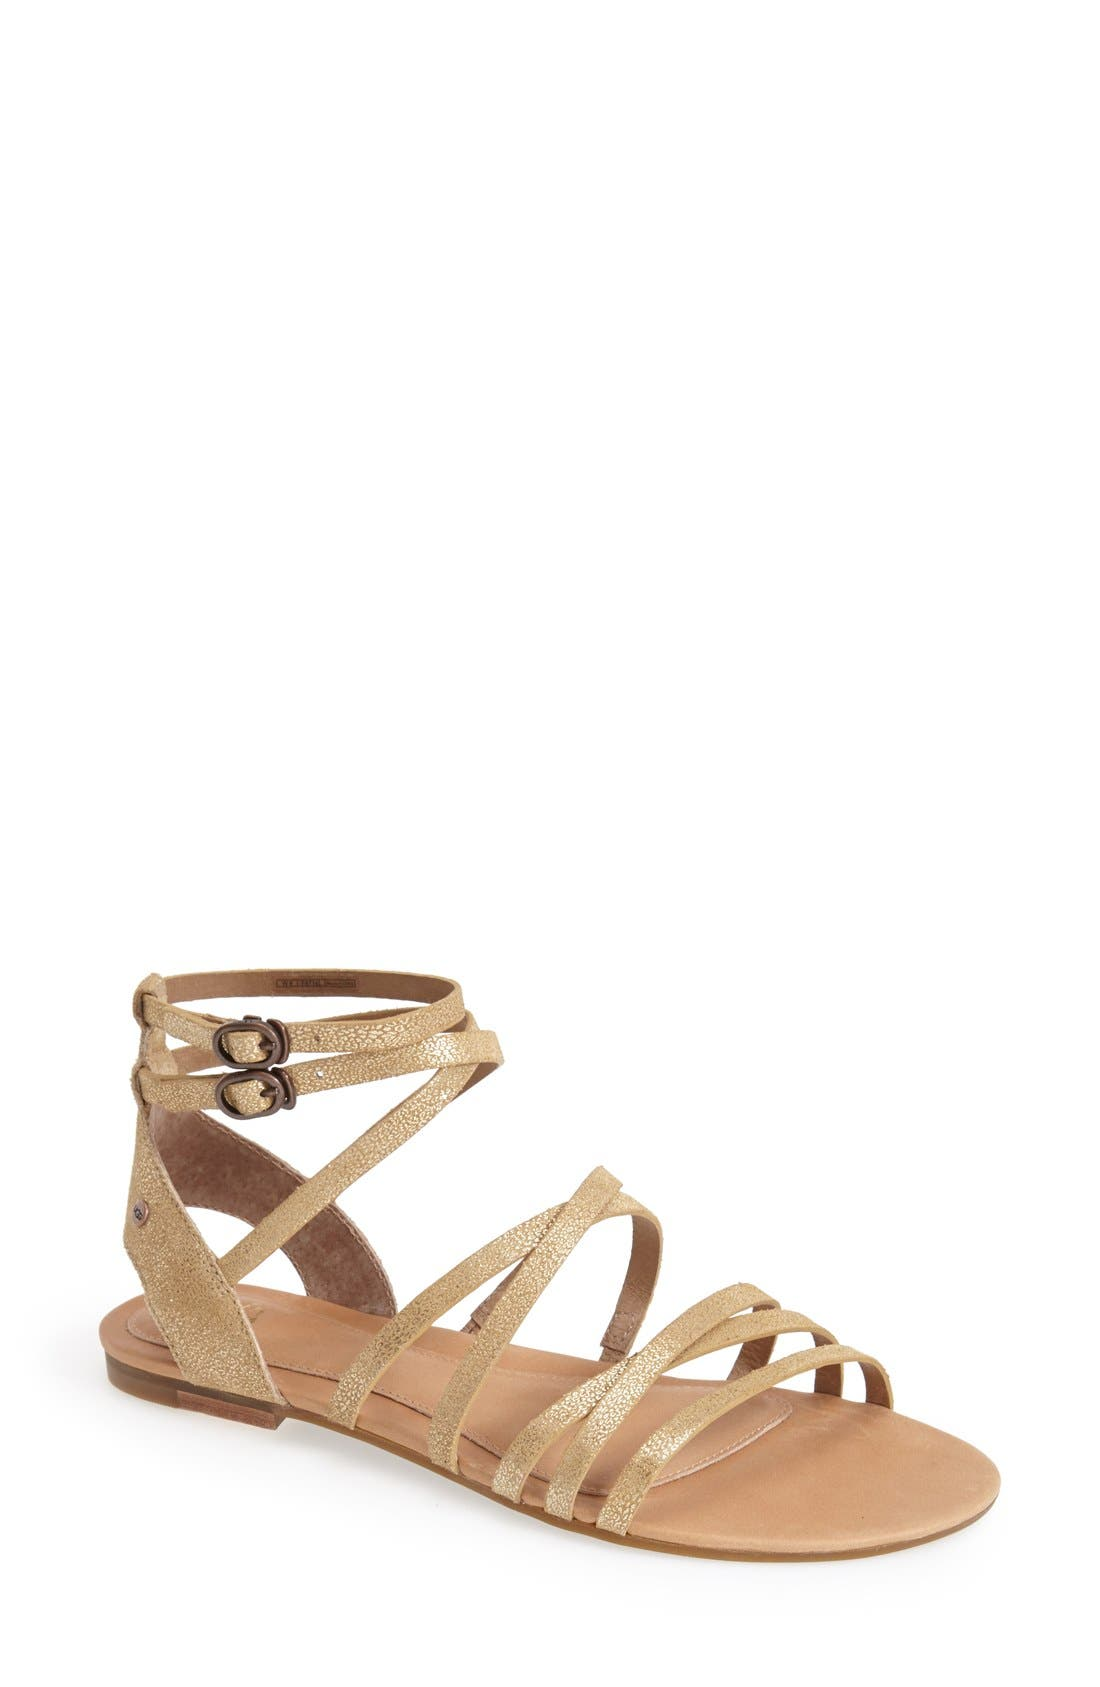 Main Image - UGG® Australia 'Devie' Metallic Leather Sandal (Women)